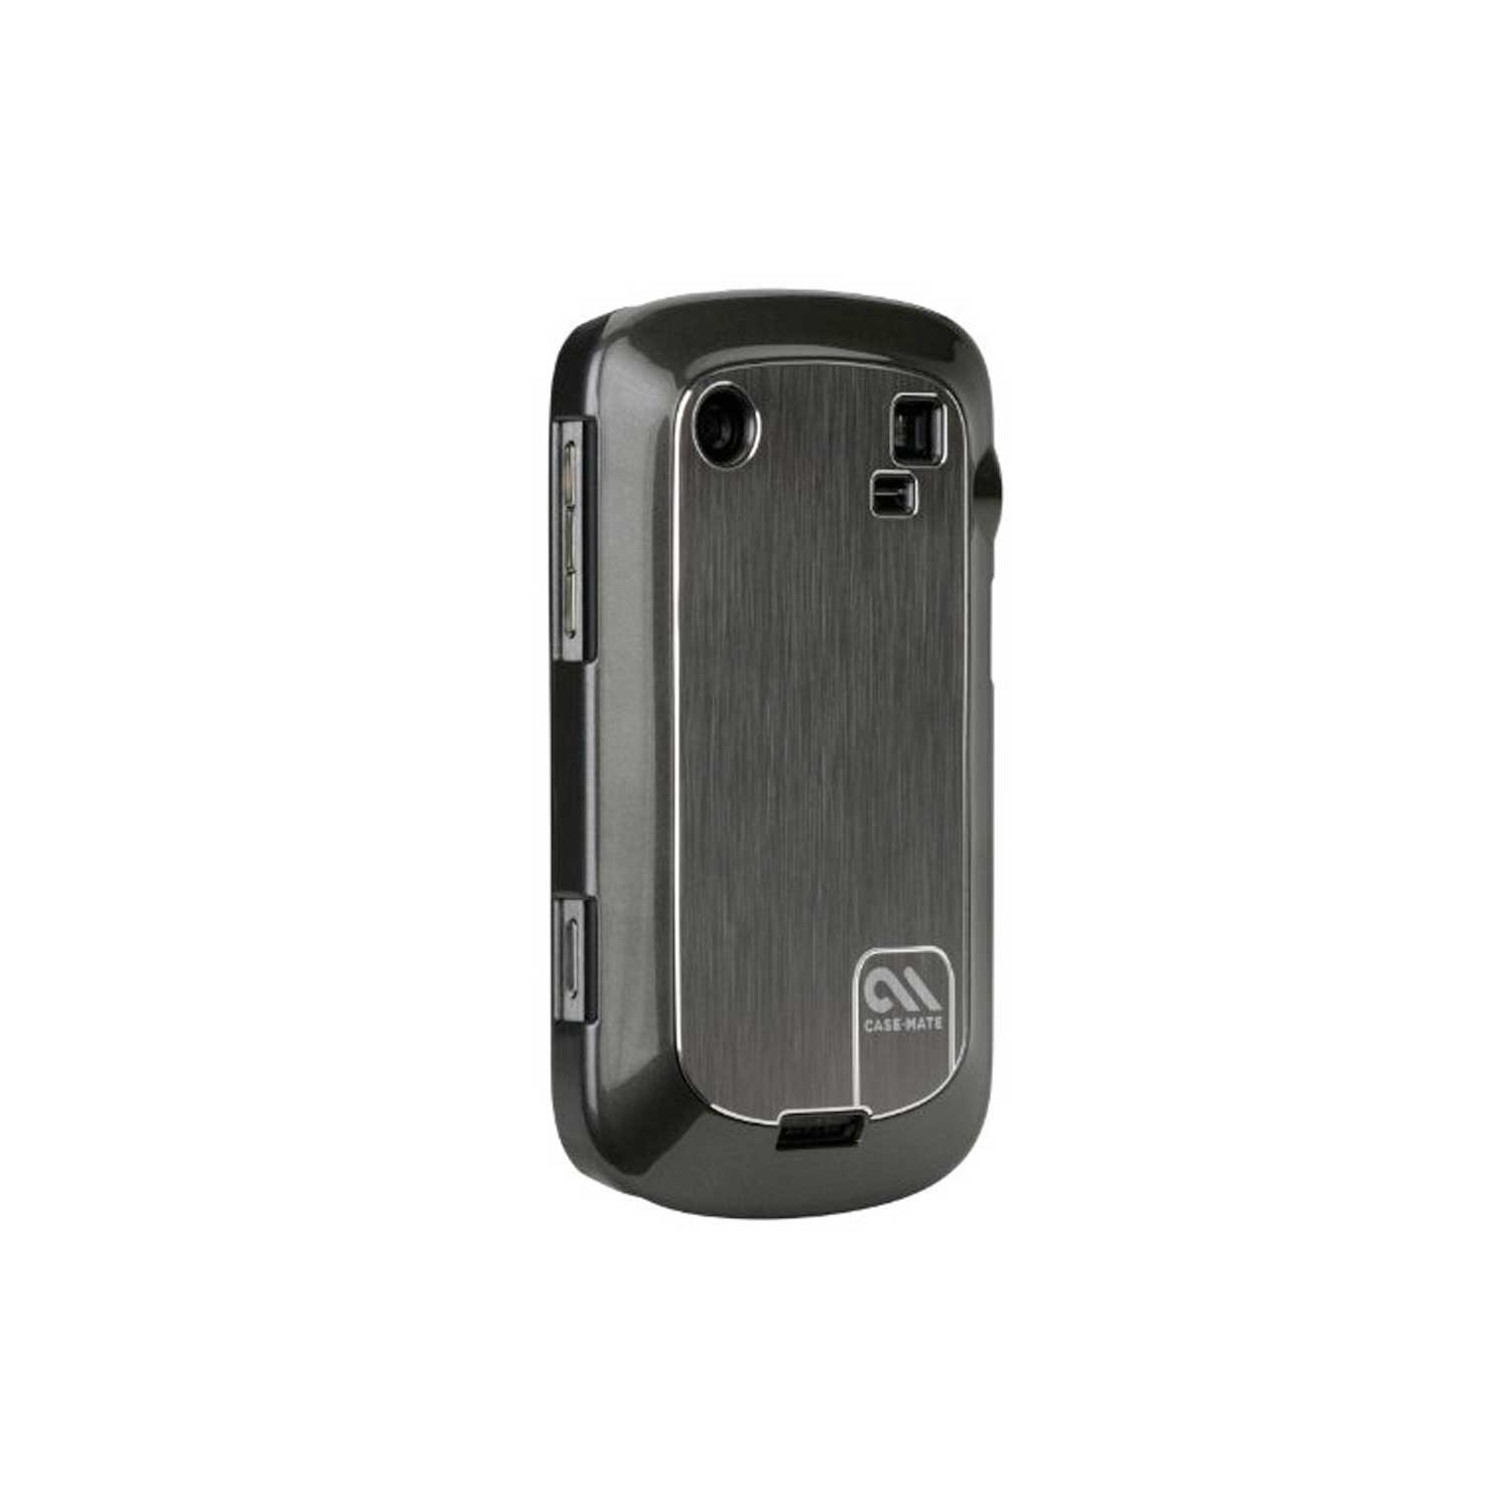 Case - BARELY THERE CASE for BlackBerry Bold 9900 / 9930